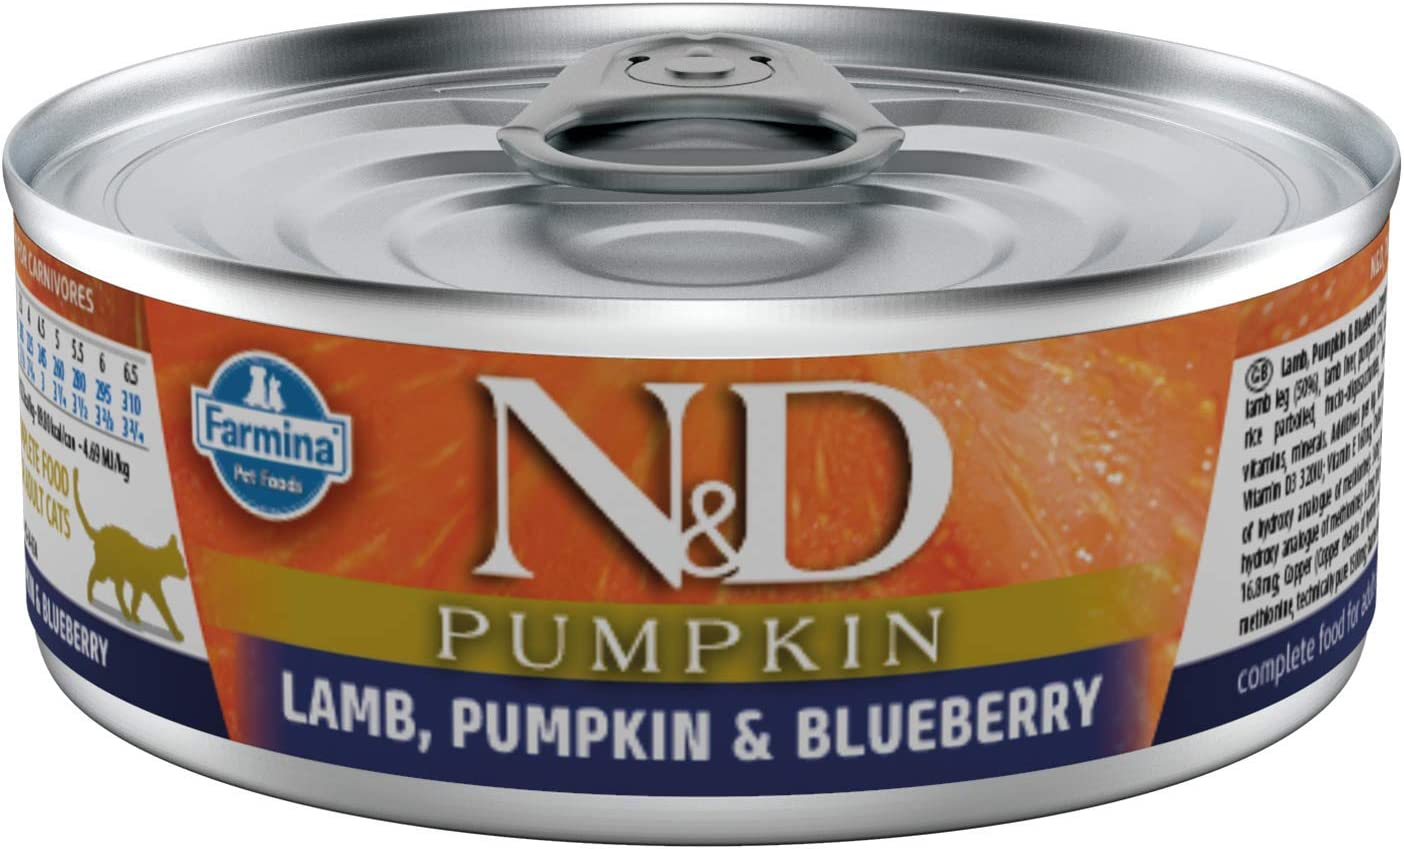 Farmina Natural & Delicious Lamb, Pumpkin and Blueberry for Cats, 2.8 Ounce, Case of 12